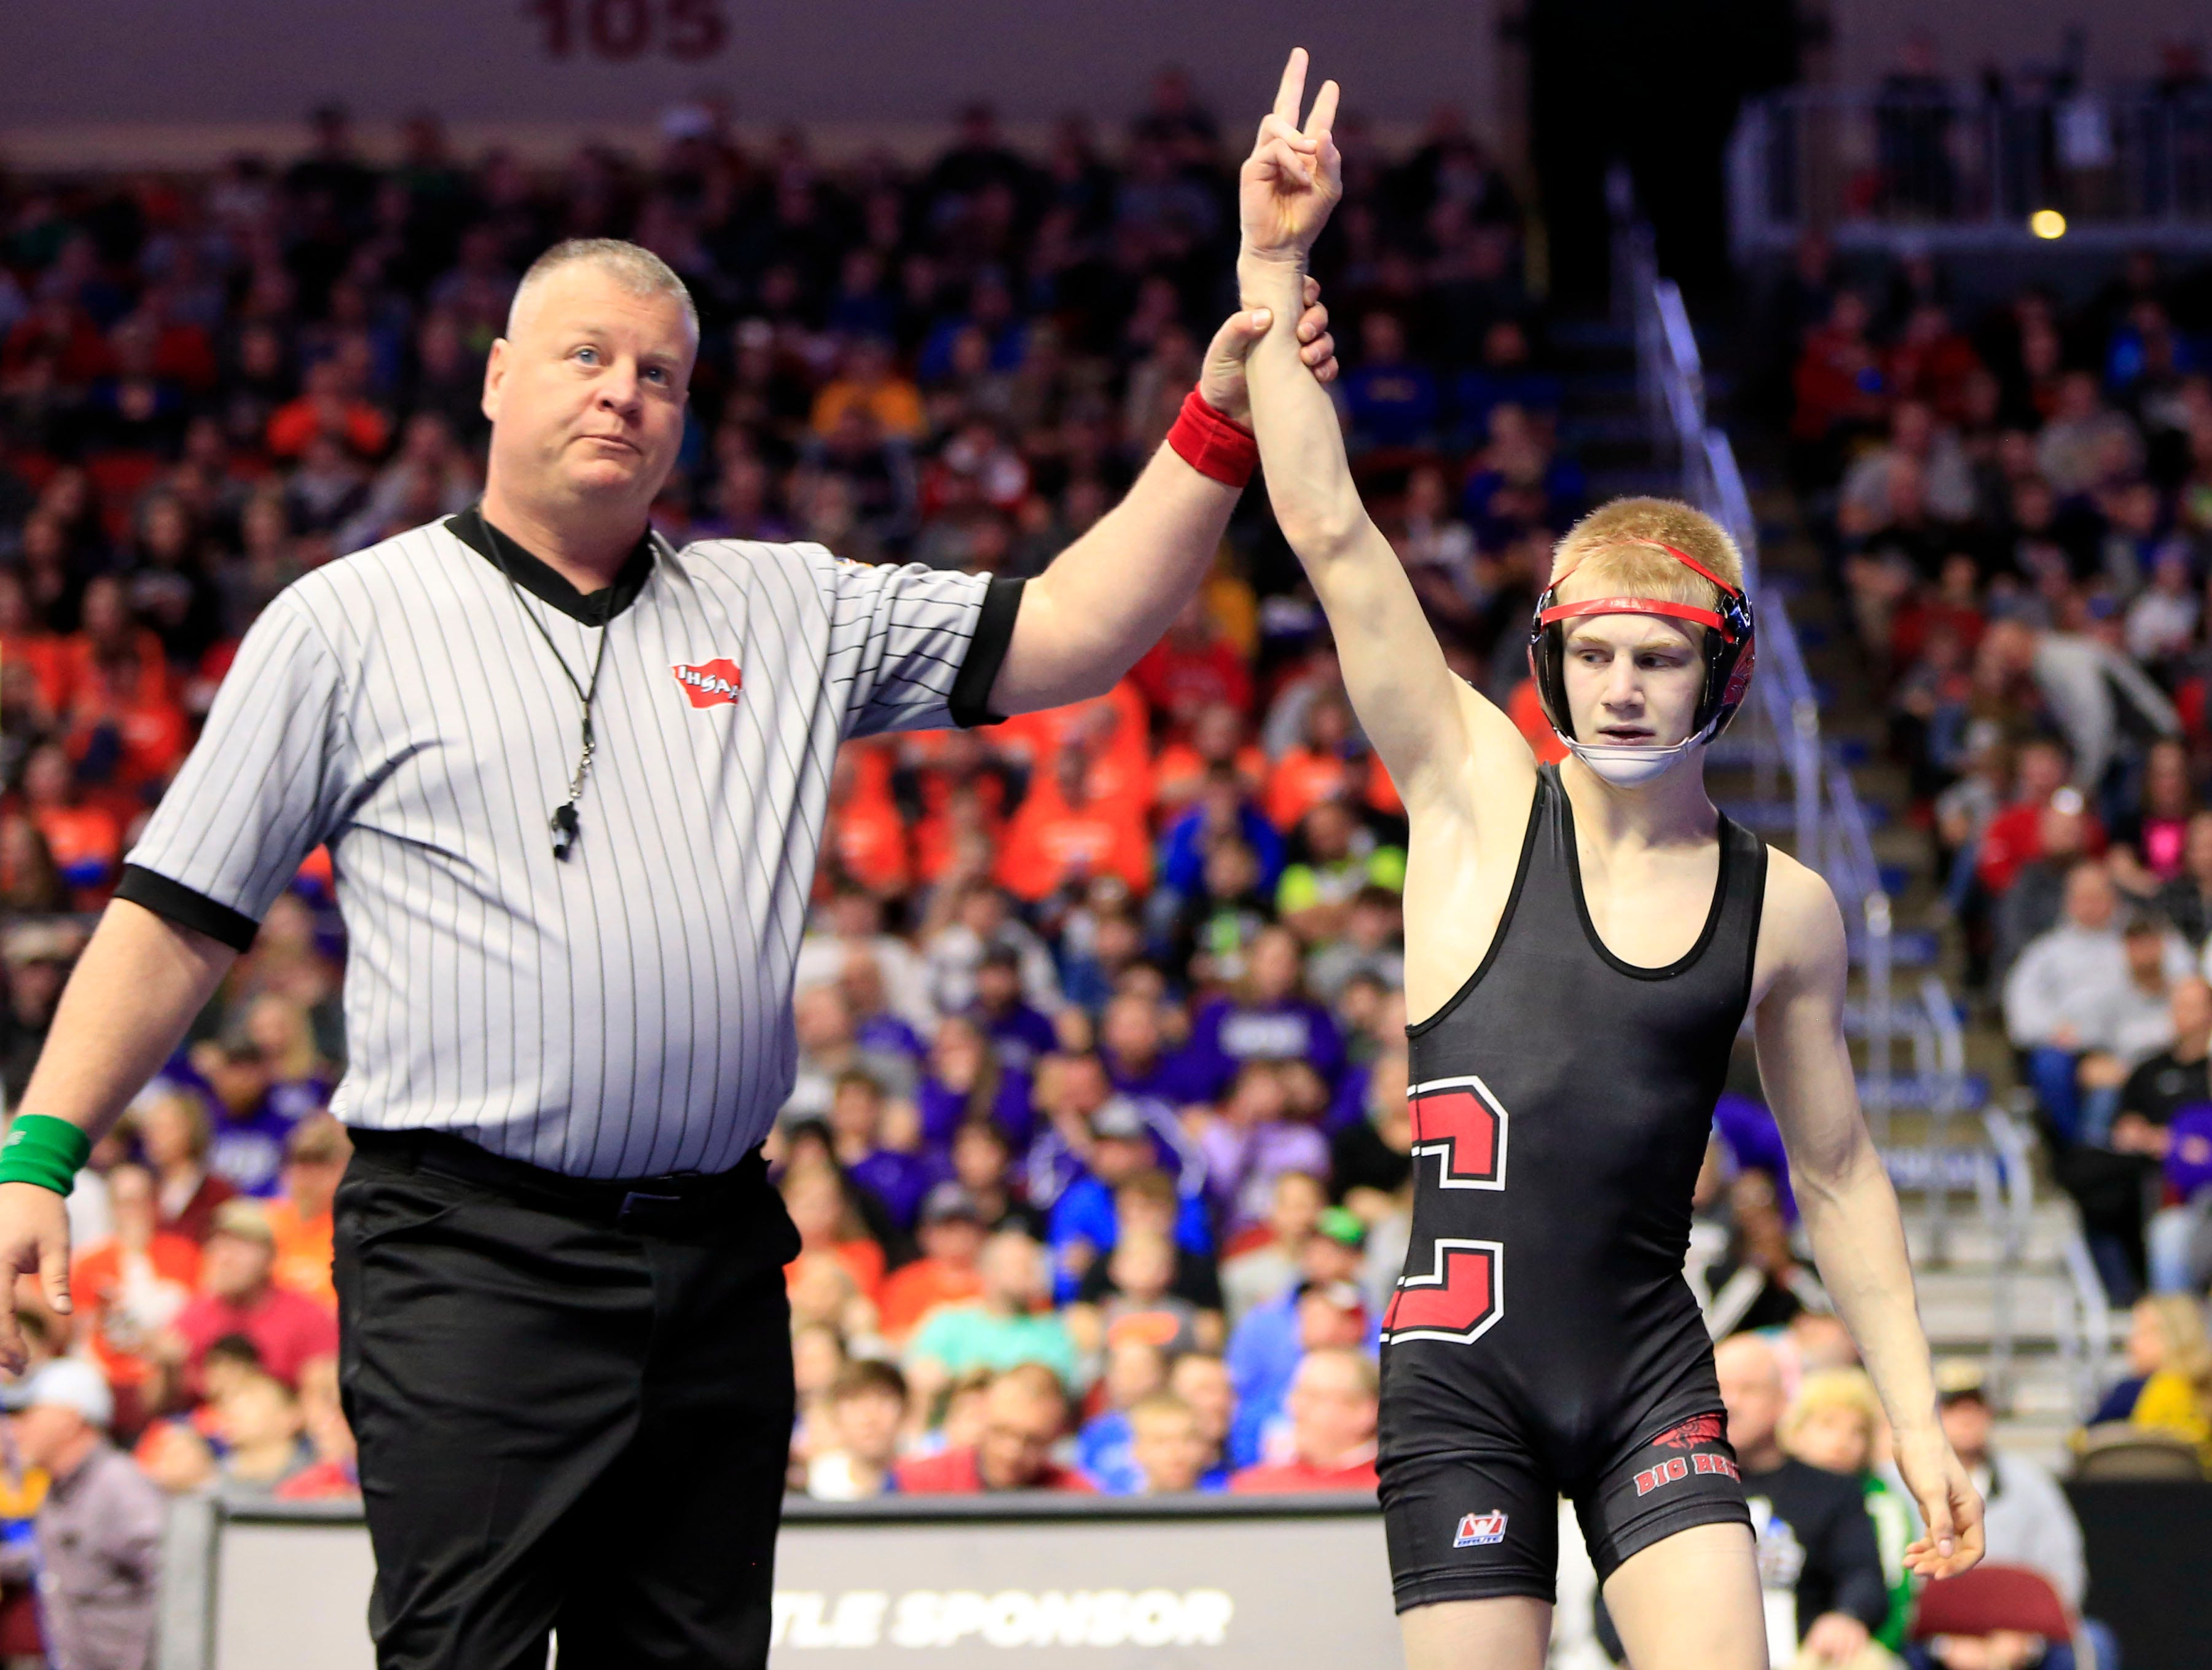 Matthew Lewis of Centerville beats Isaiah Weber of Independence for the 2A state championship at 113 pounds Saturday, Feb. 16, 2019.